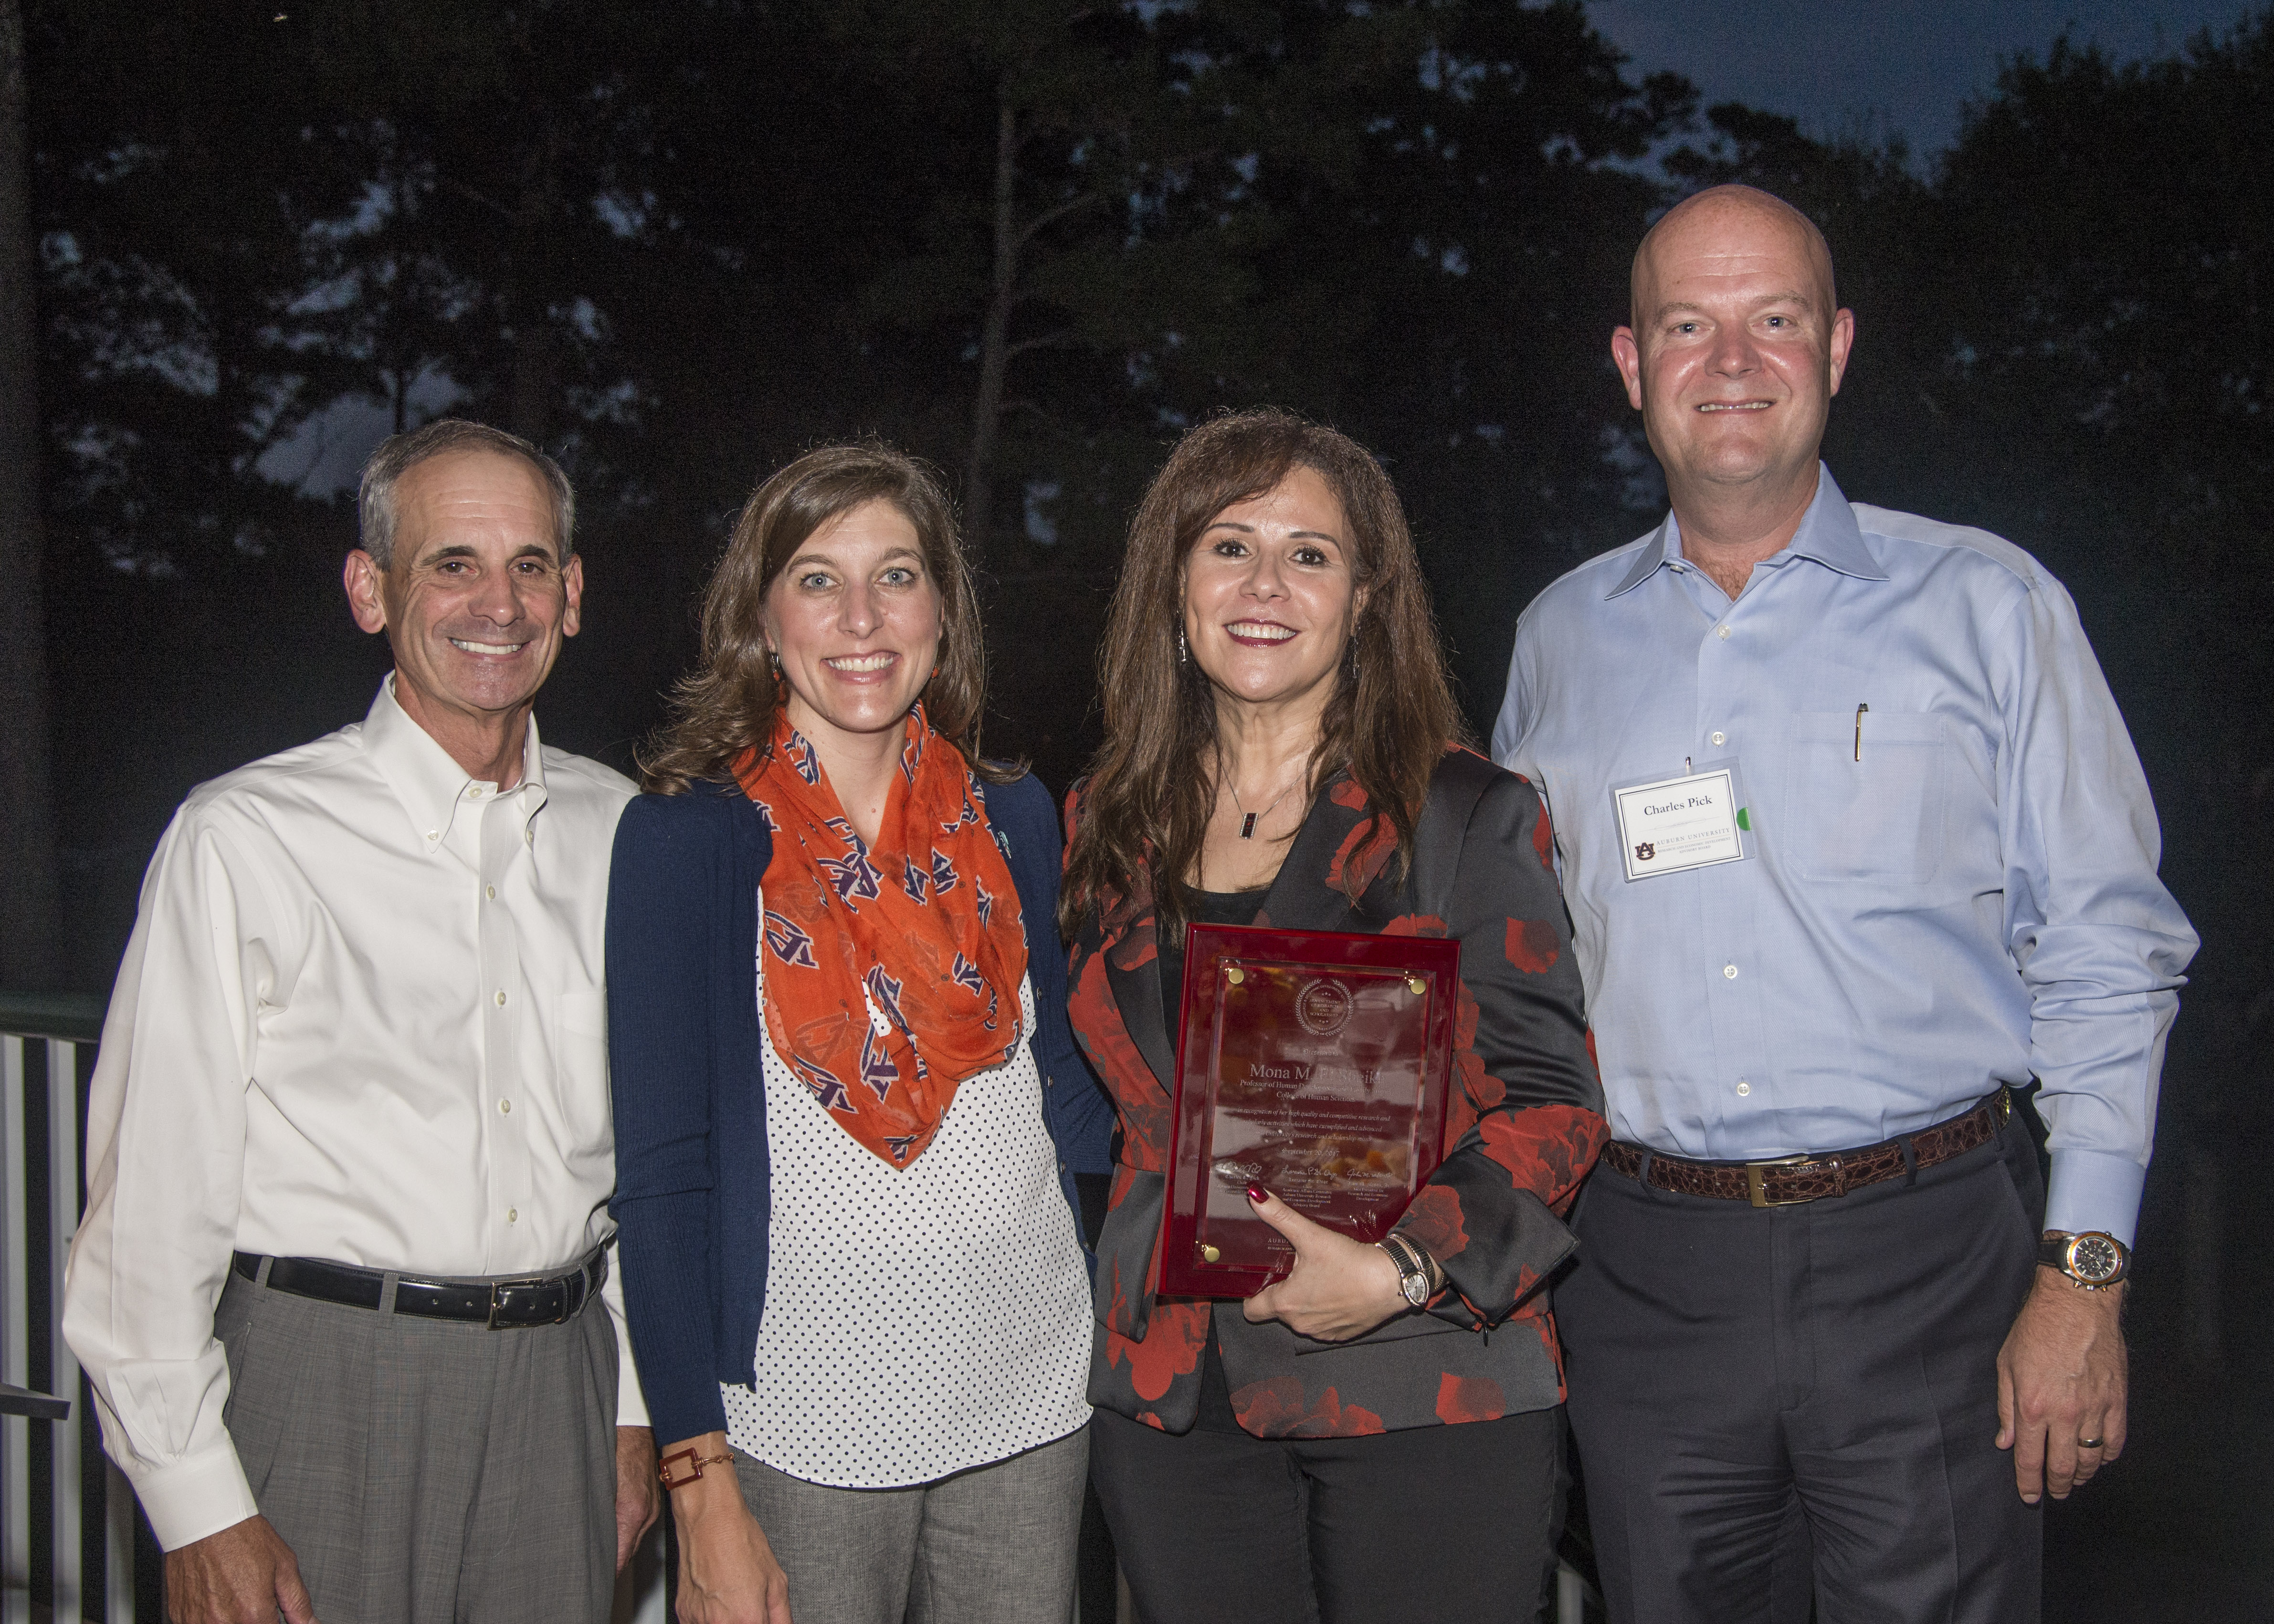 Dr. Mona El-Sheikh holds a plaque recognizing her as recipient of Auburn University's 2017 Research and Economic Development Advisory Board Advancement of Research and Scholarship Achievement Award. Also pictured: Dr. John Mason, vice president for research and economic development; Dr. Lori St. Onge, board member; and Charles Pick, board member.